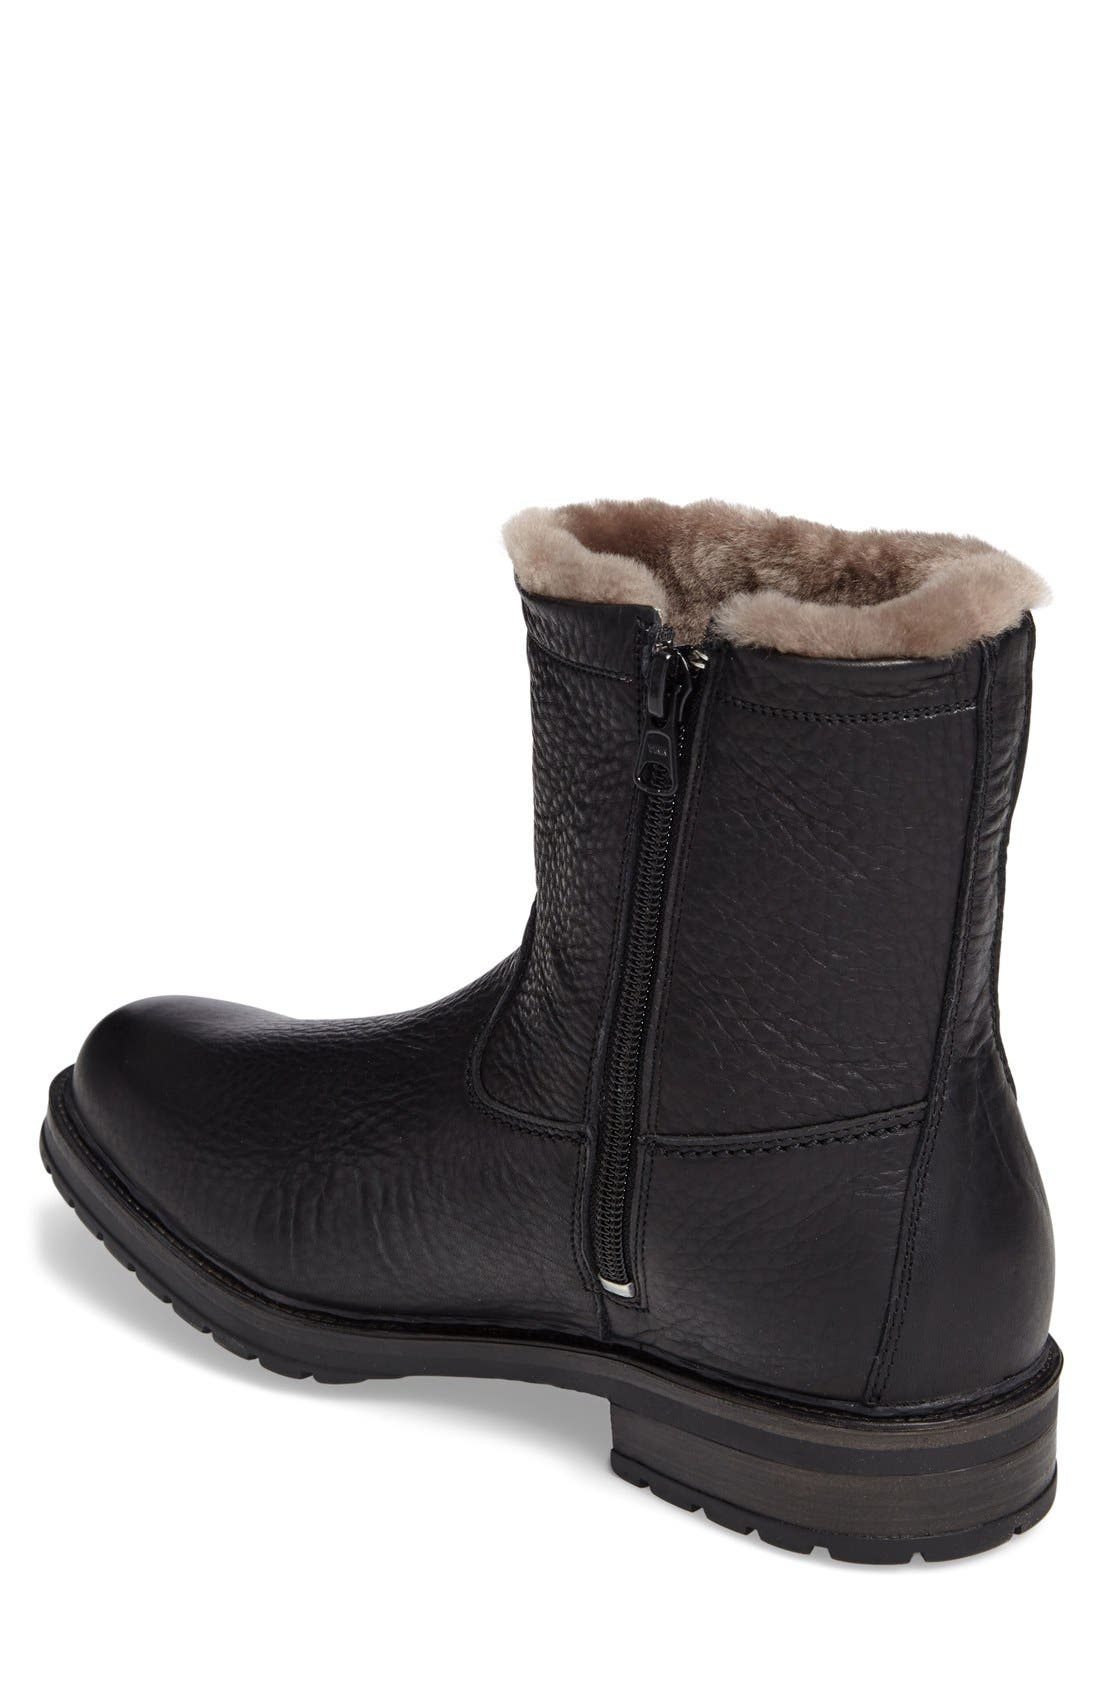 Leonardo Genuine Shearling Lined Boot,                             Alternate thumbnail 4, color,                             BLACK MONTANA